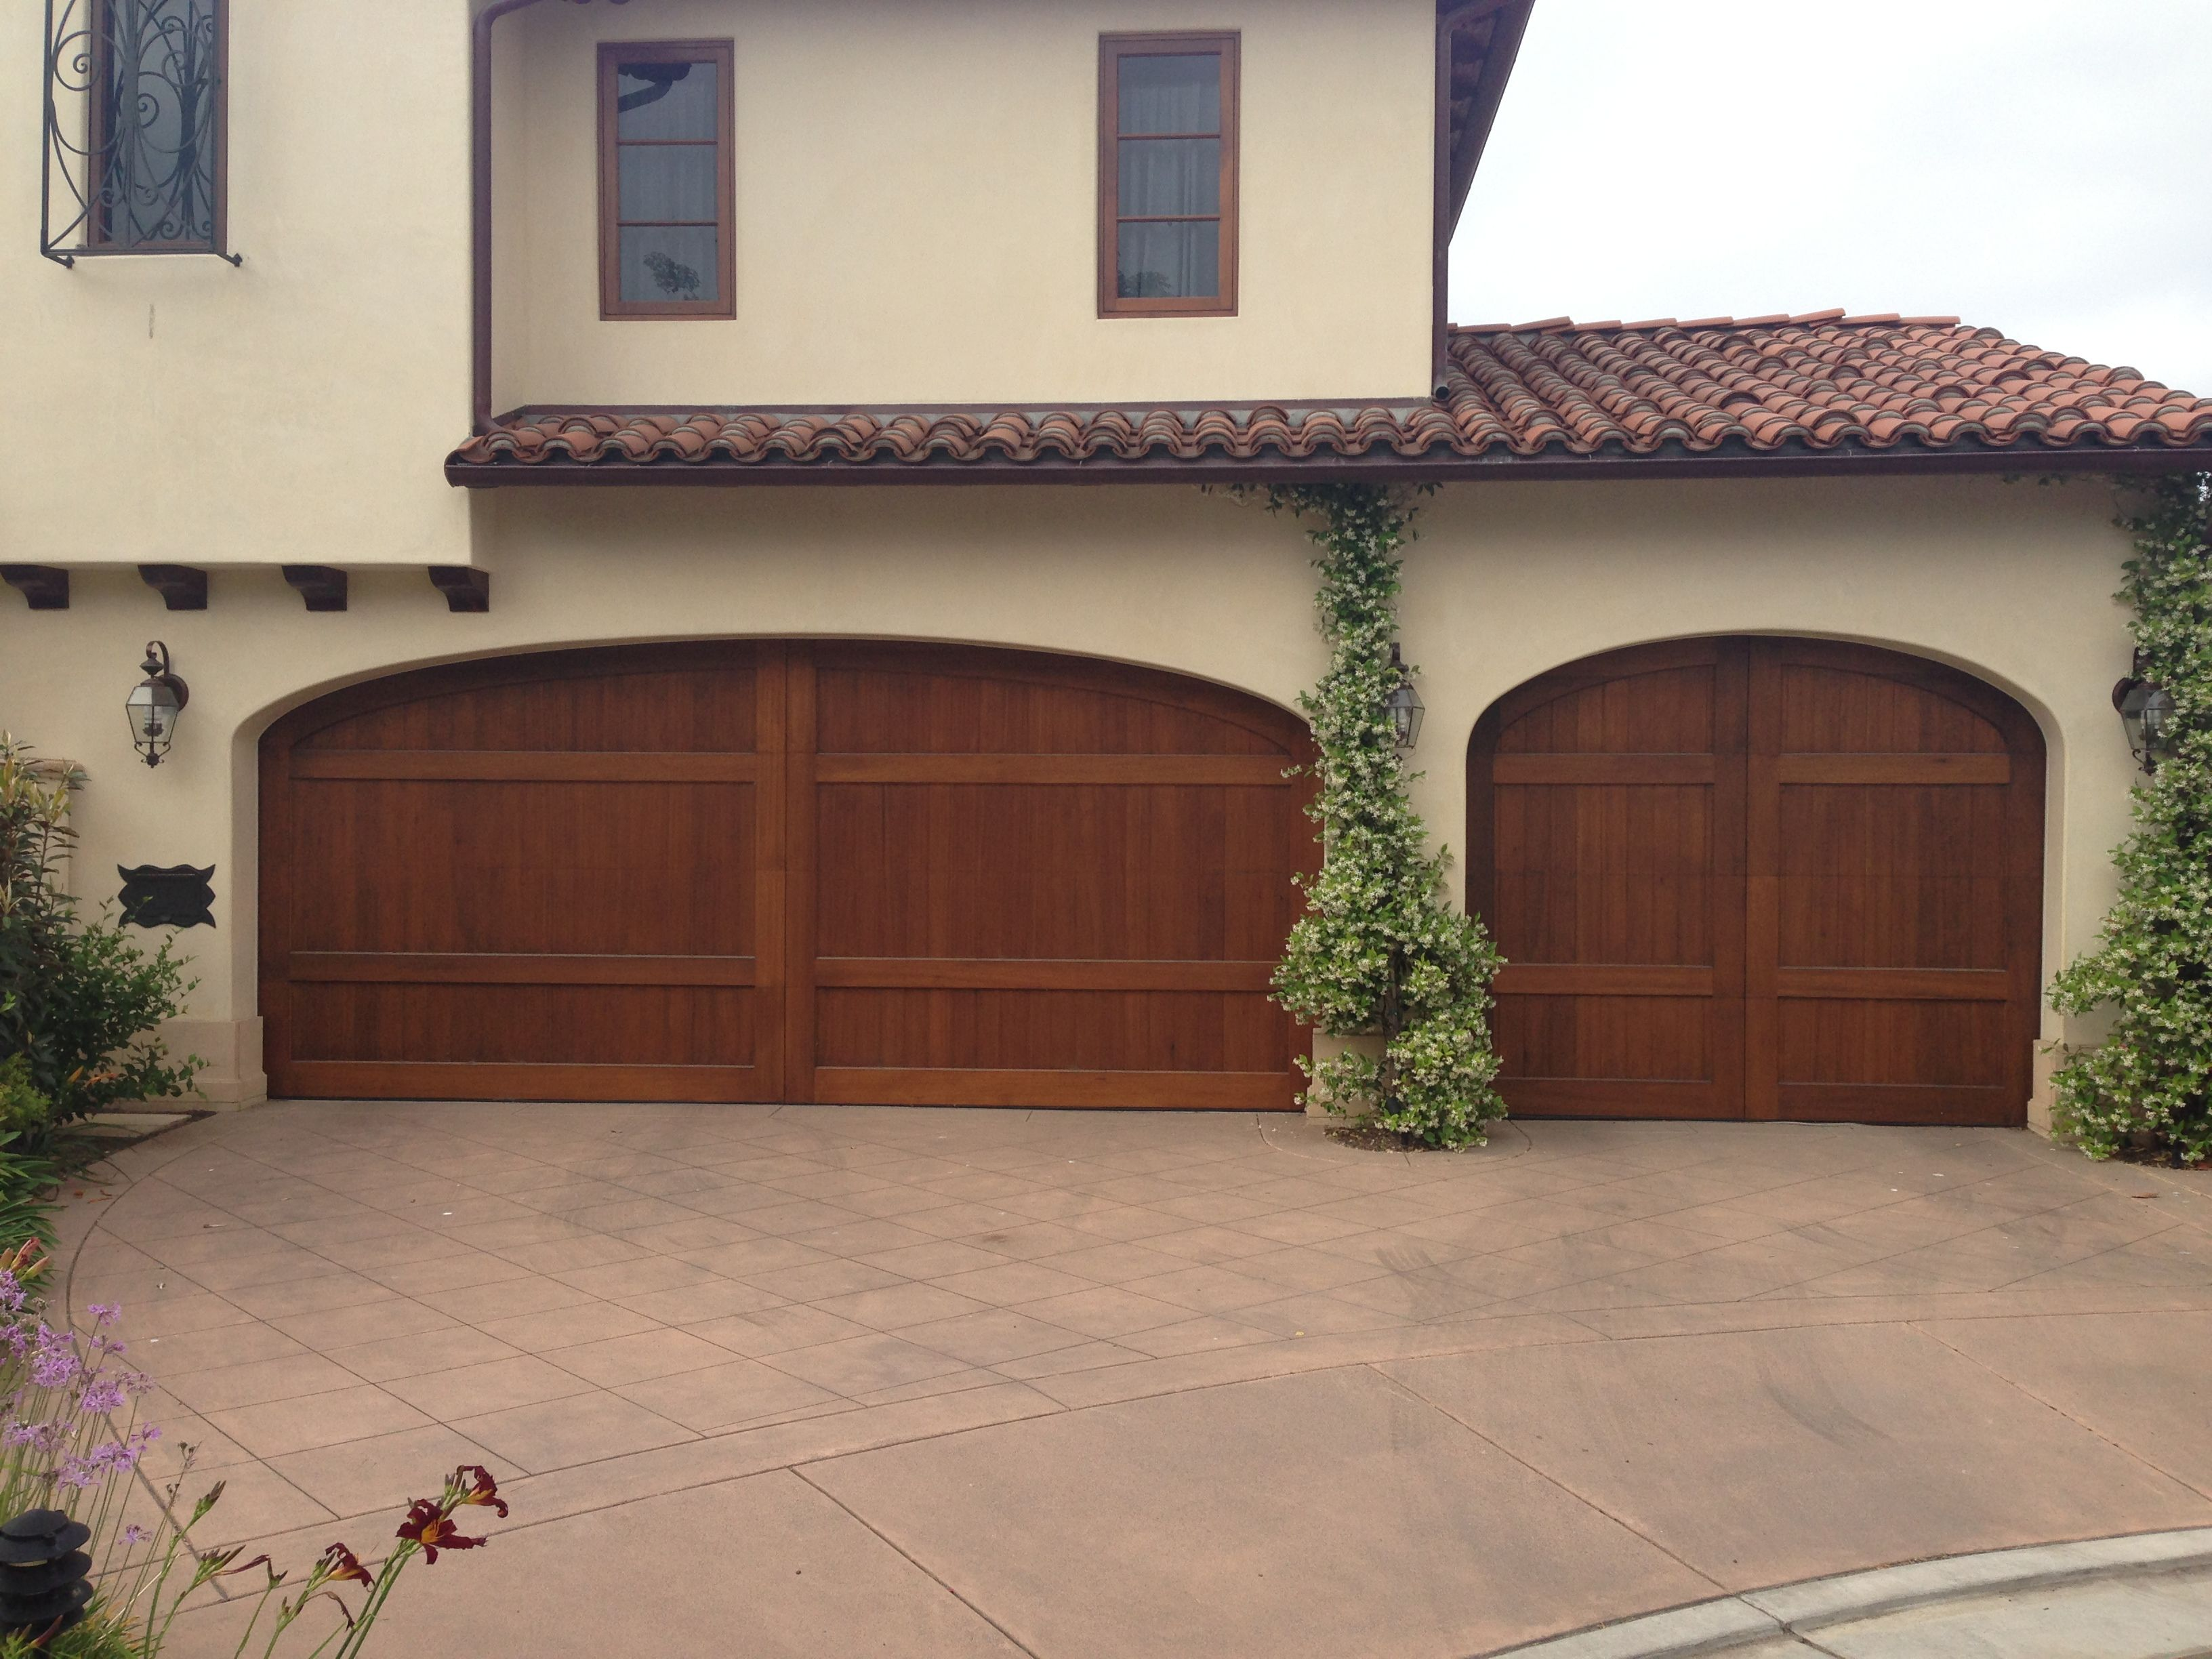 2448 #60392C Sectional Wood Sectional Sectional Garage Doors Wood Garage Doors  image Wooden Sectional Garage Doors 36433264